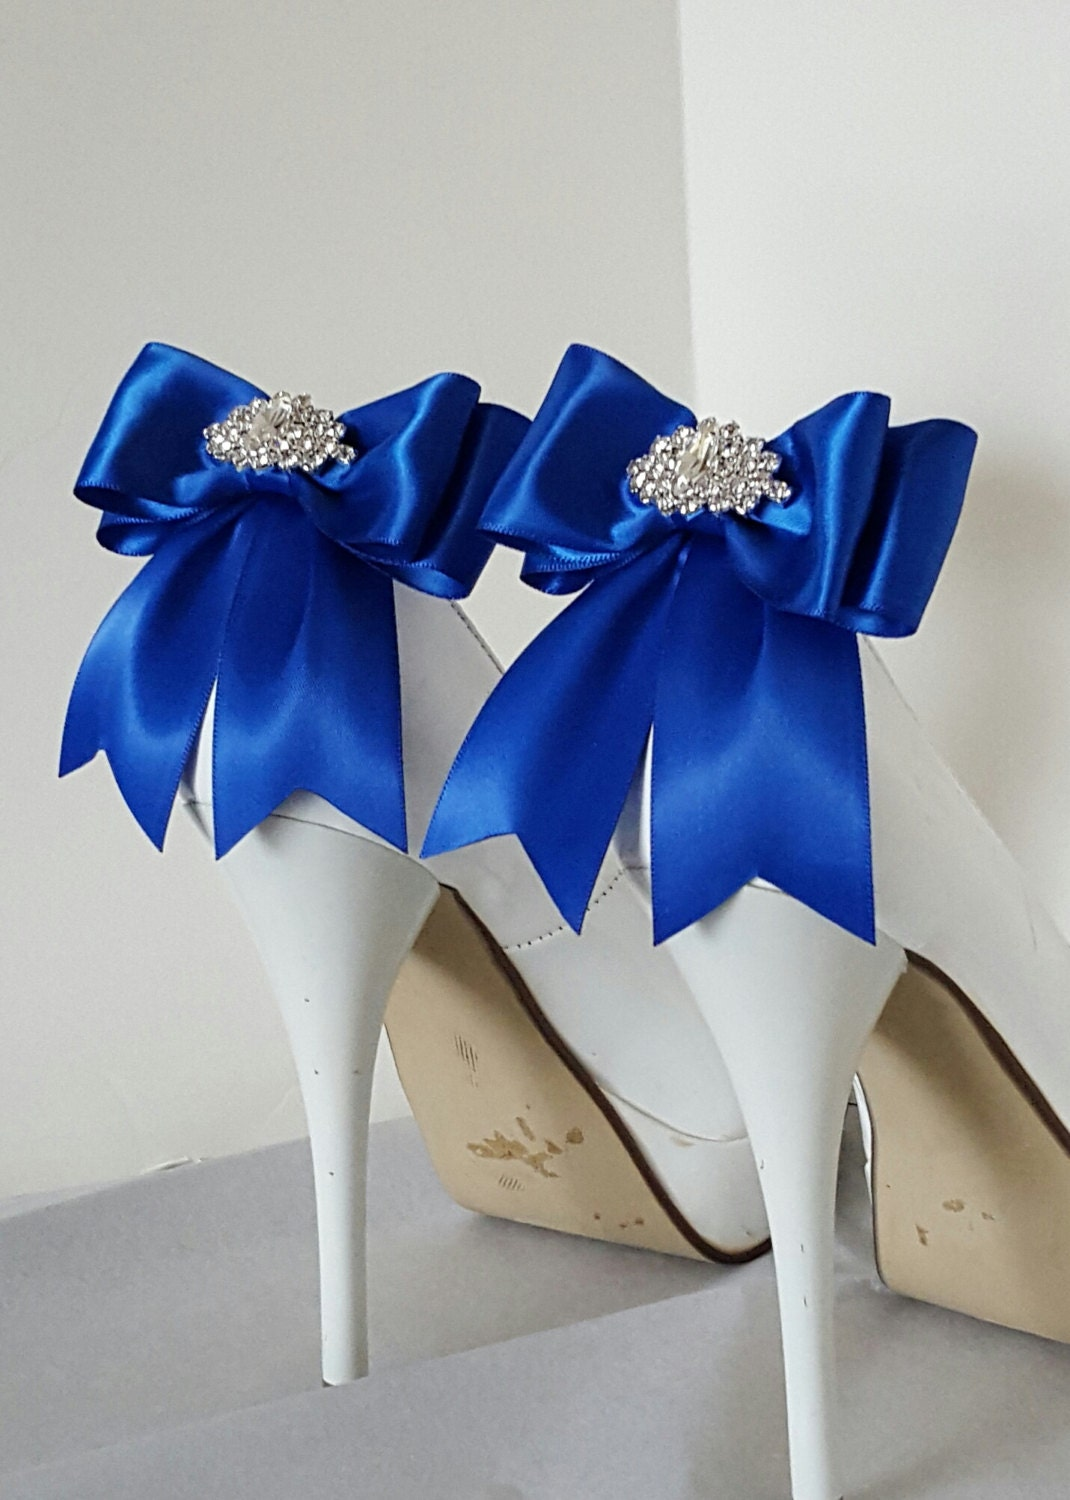 Royal Blue Wedding Shoe ClipsBridal Shoe Clips MANY